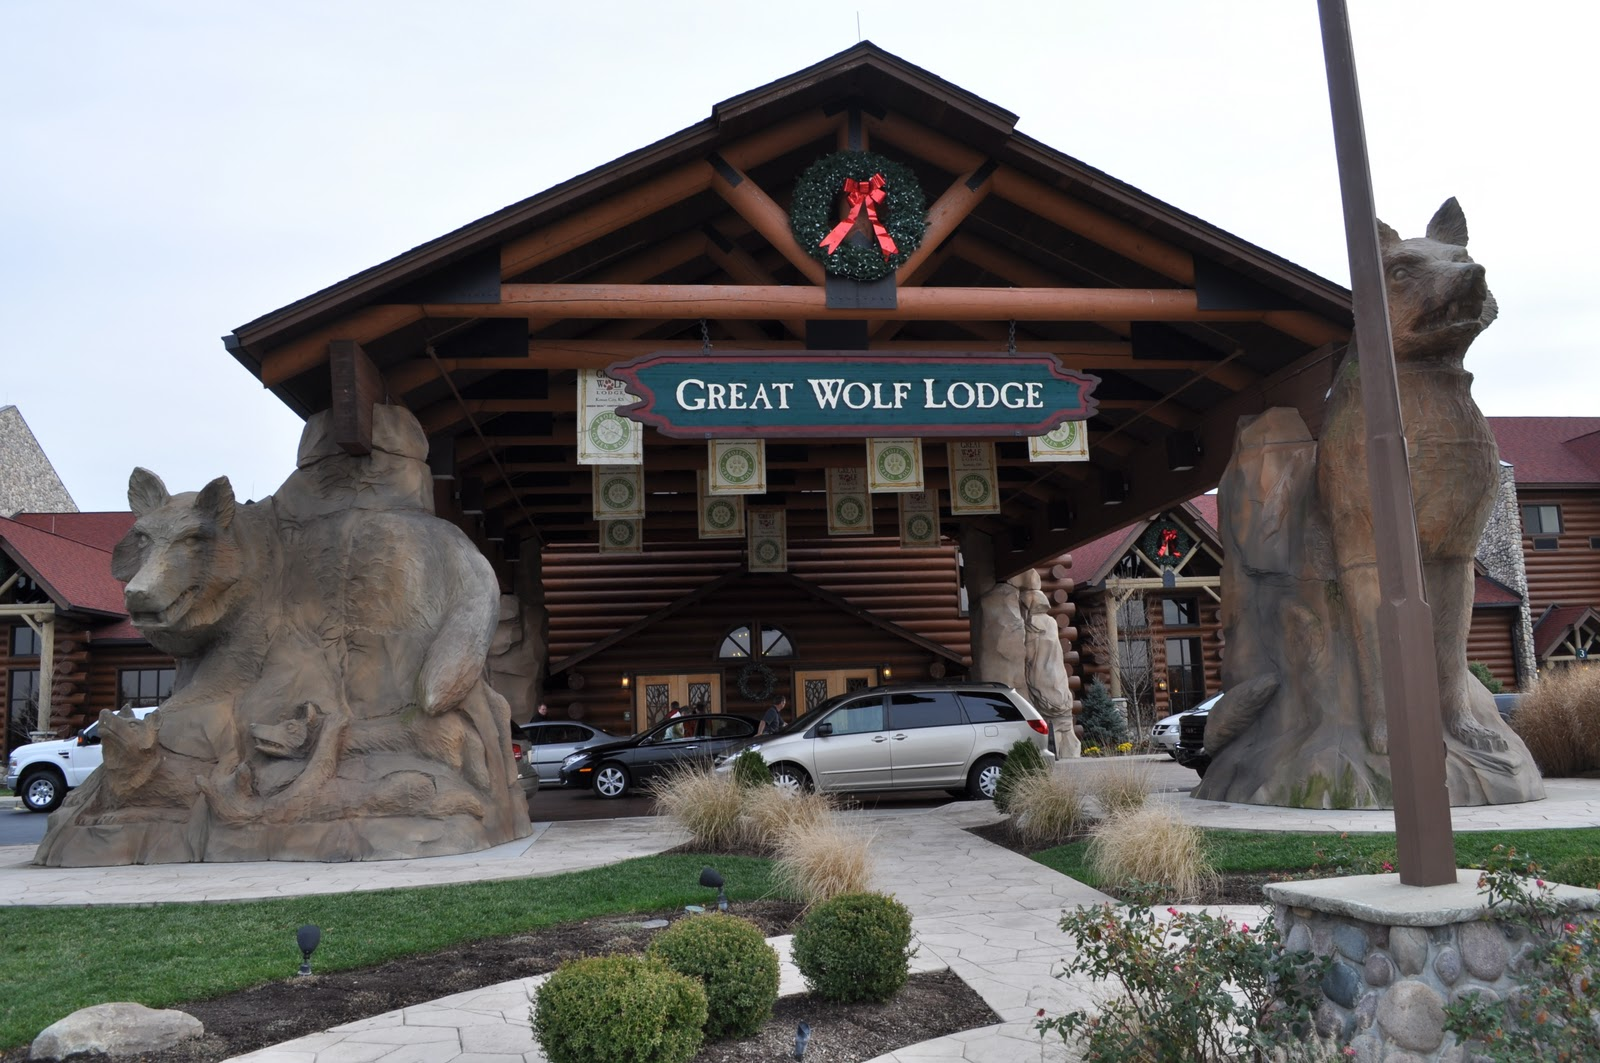 Fell Family Fun The Great Wolf Lodge